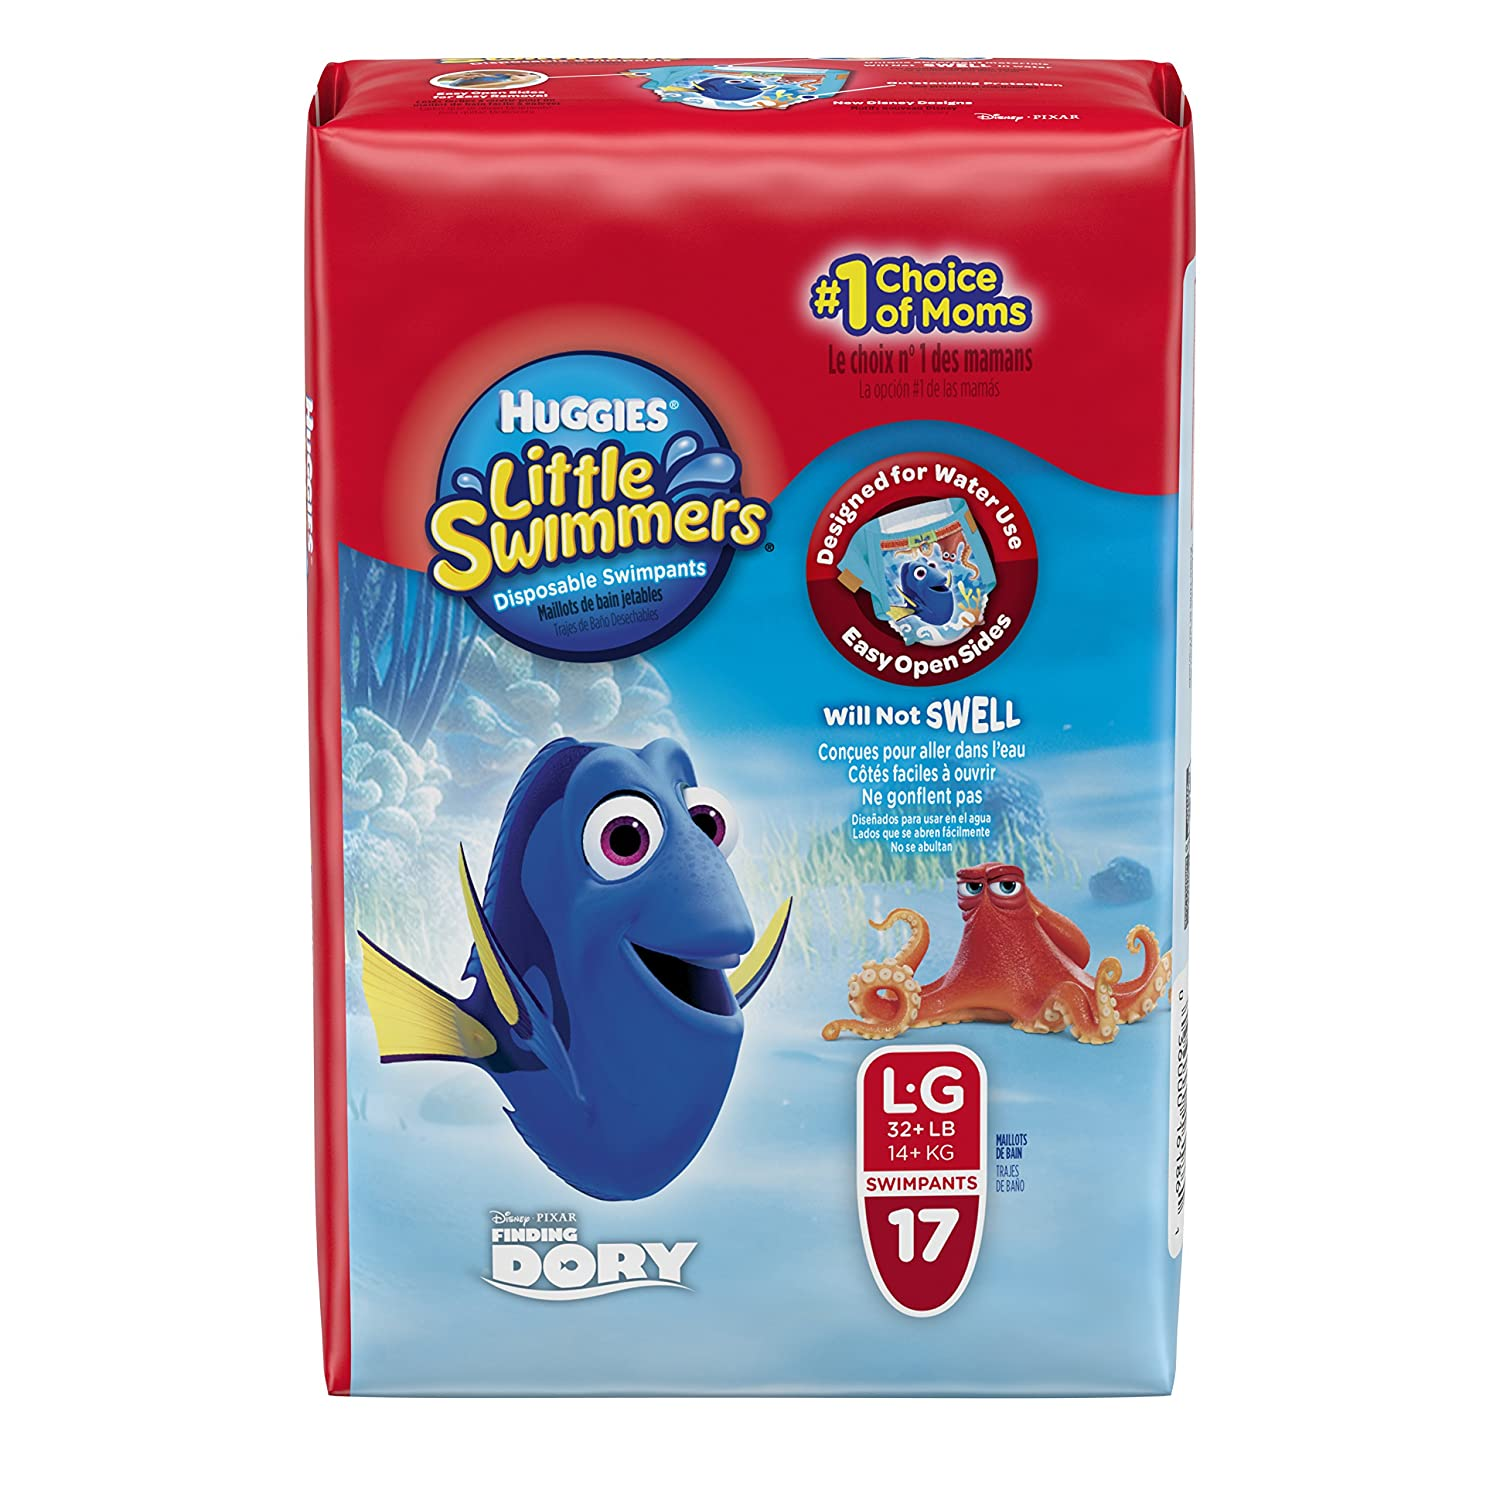 Amazon.com: Huggies Little Swimmers Diapers, Large, 17 Count: Health & Personal Care